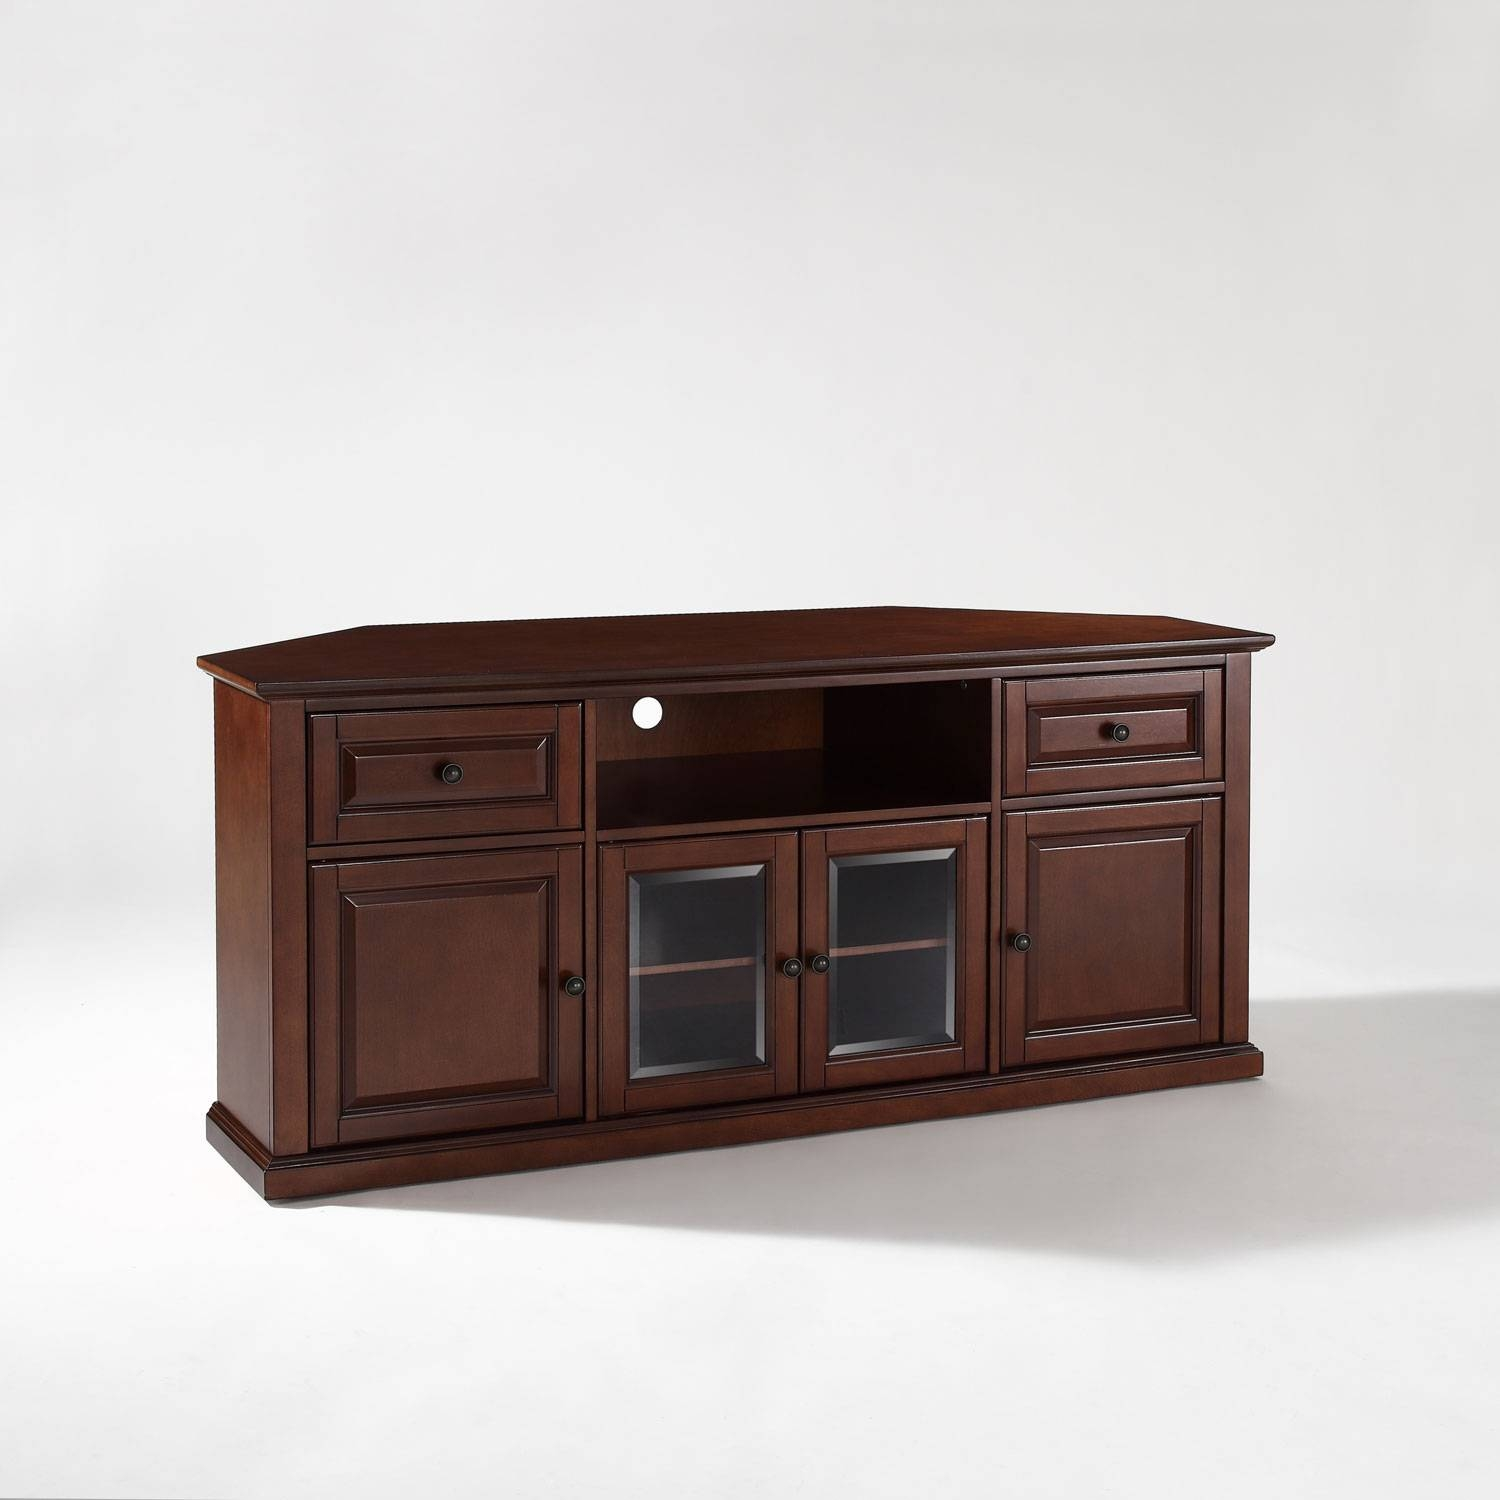 Tv Stands & Cabinets On Sale | Bellacor in Large Corner Tv Stands (Image 13 of 15)